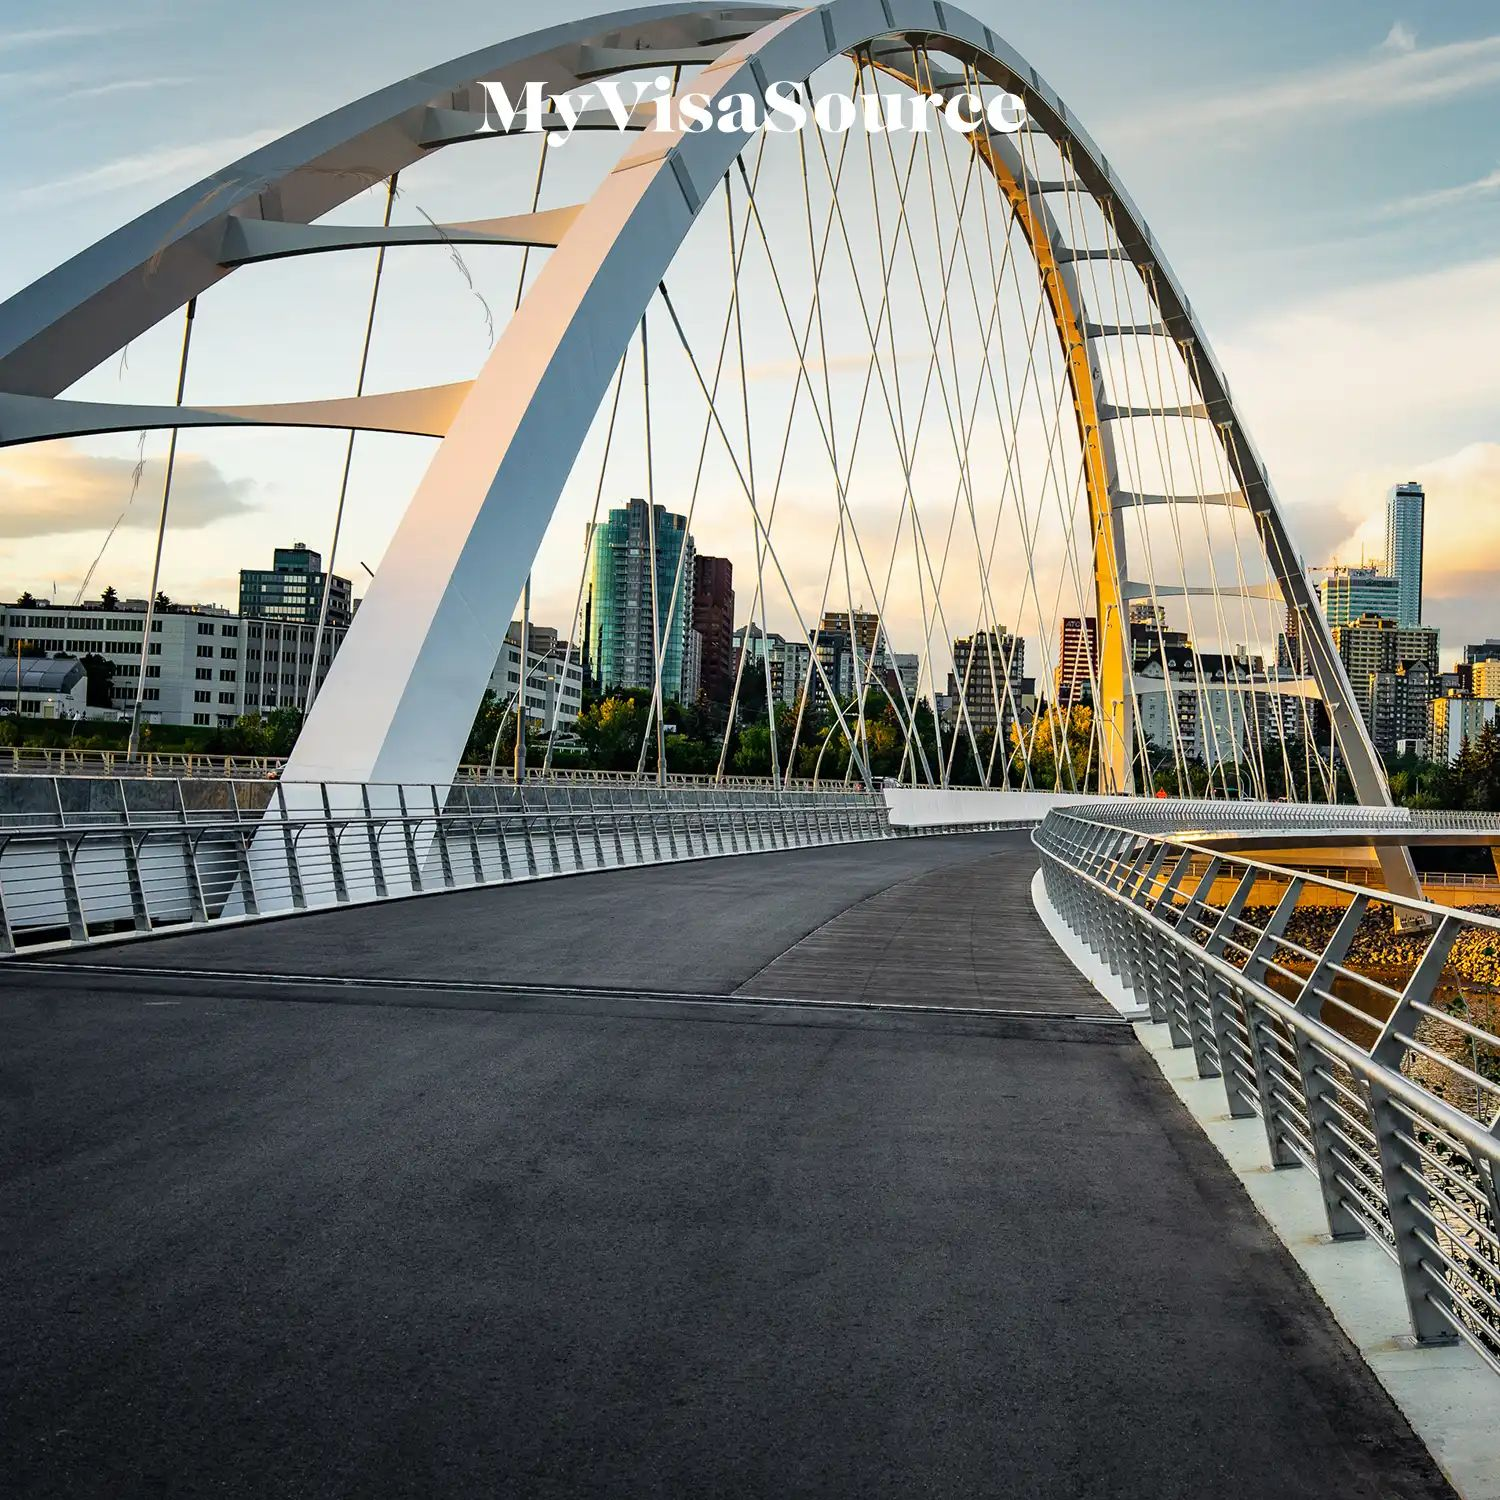 suspension-bridge-with-a-beautiful-view-in-edmonton-alberta-by-my-visa-source